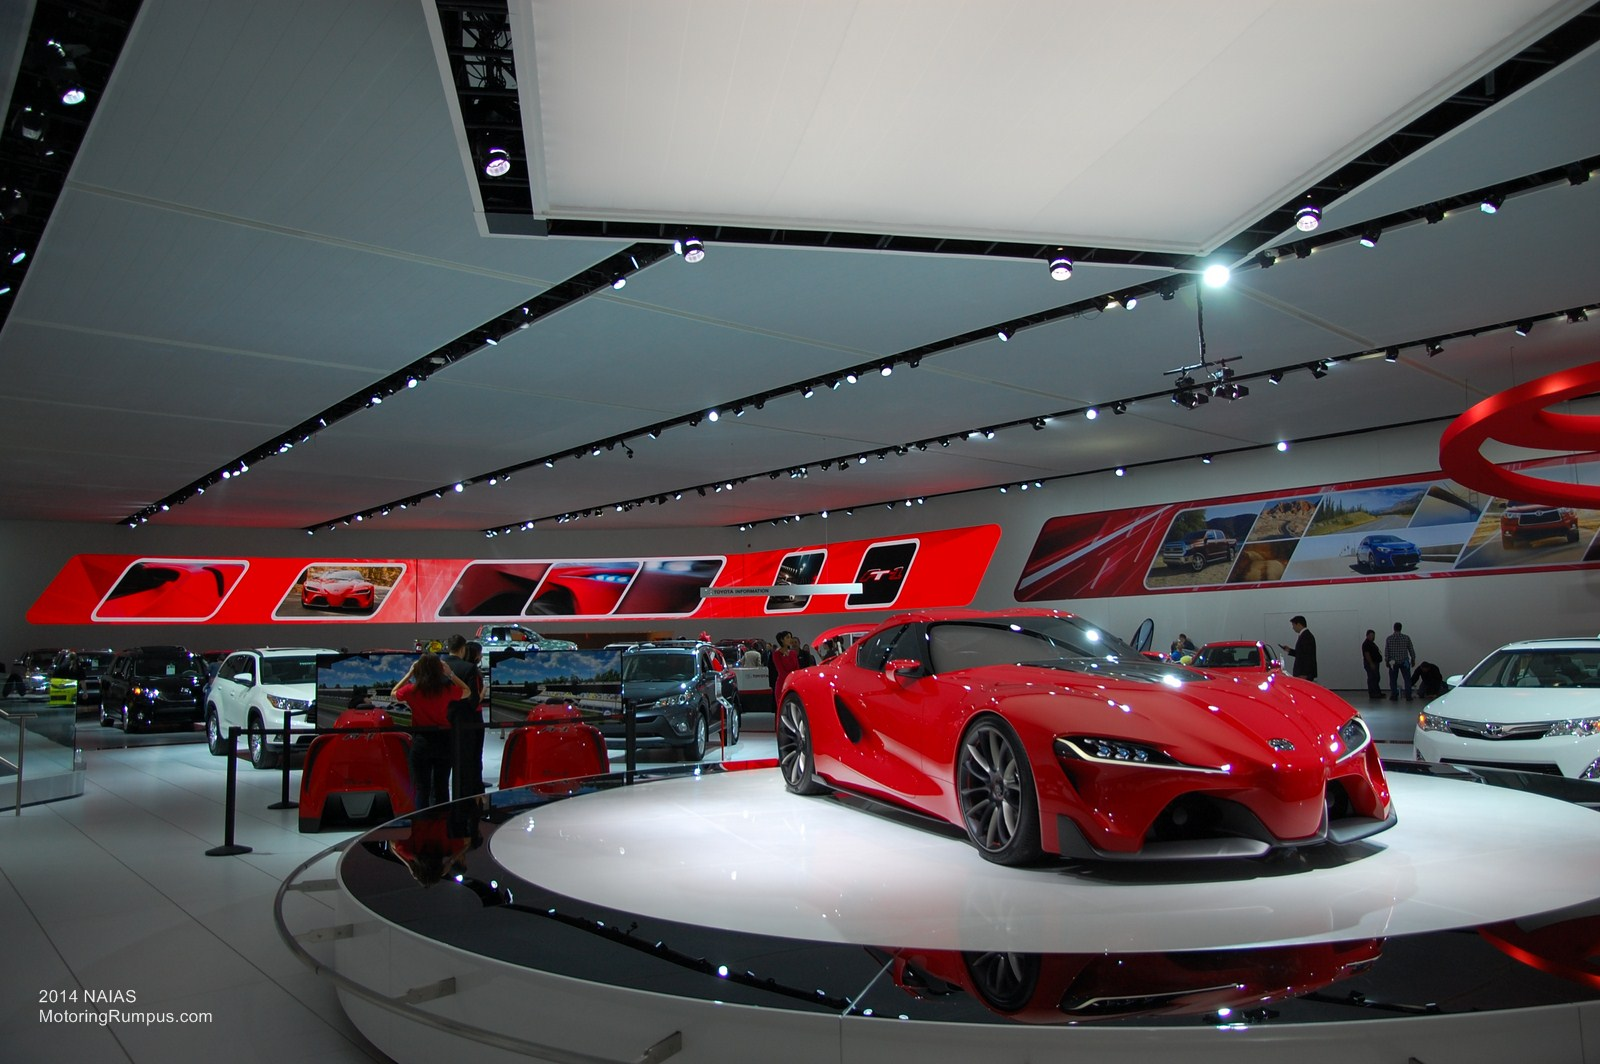 2014 NAIAS Toyota FT-1 Concept